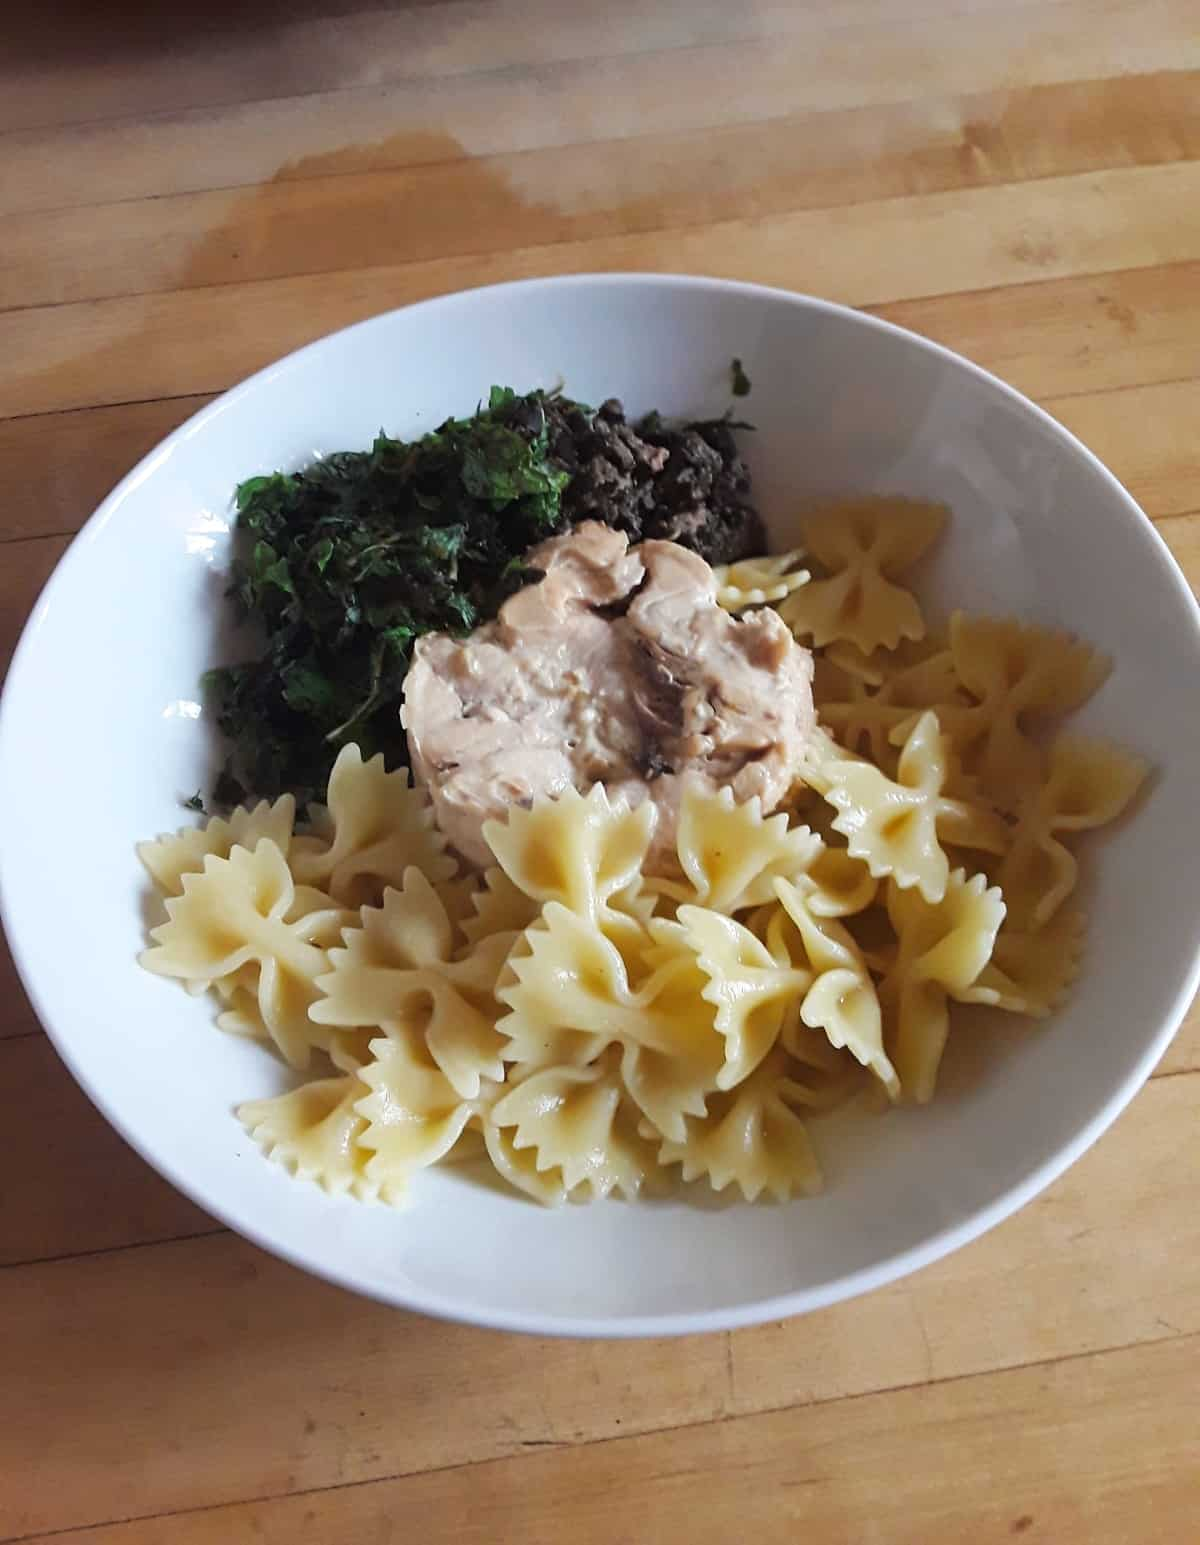 White bowl with cooked farfalle pasta, canned tuna, olive tapenade and fresh herbs before mixing.